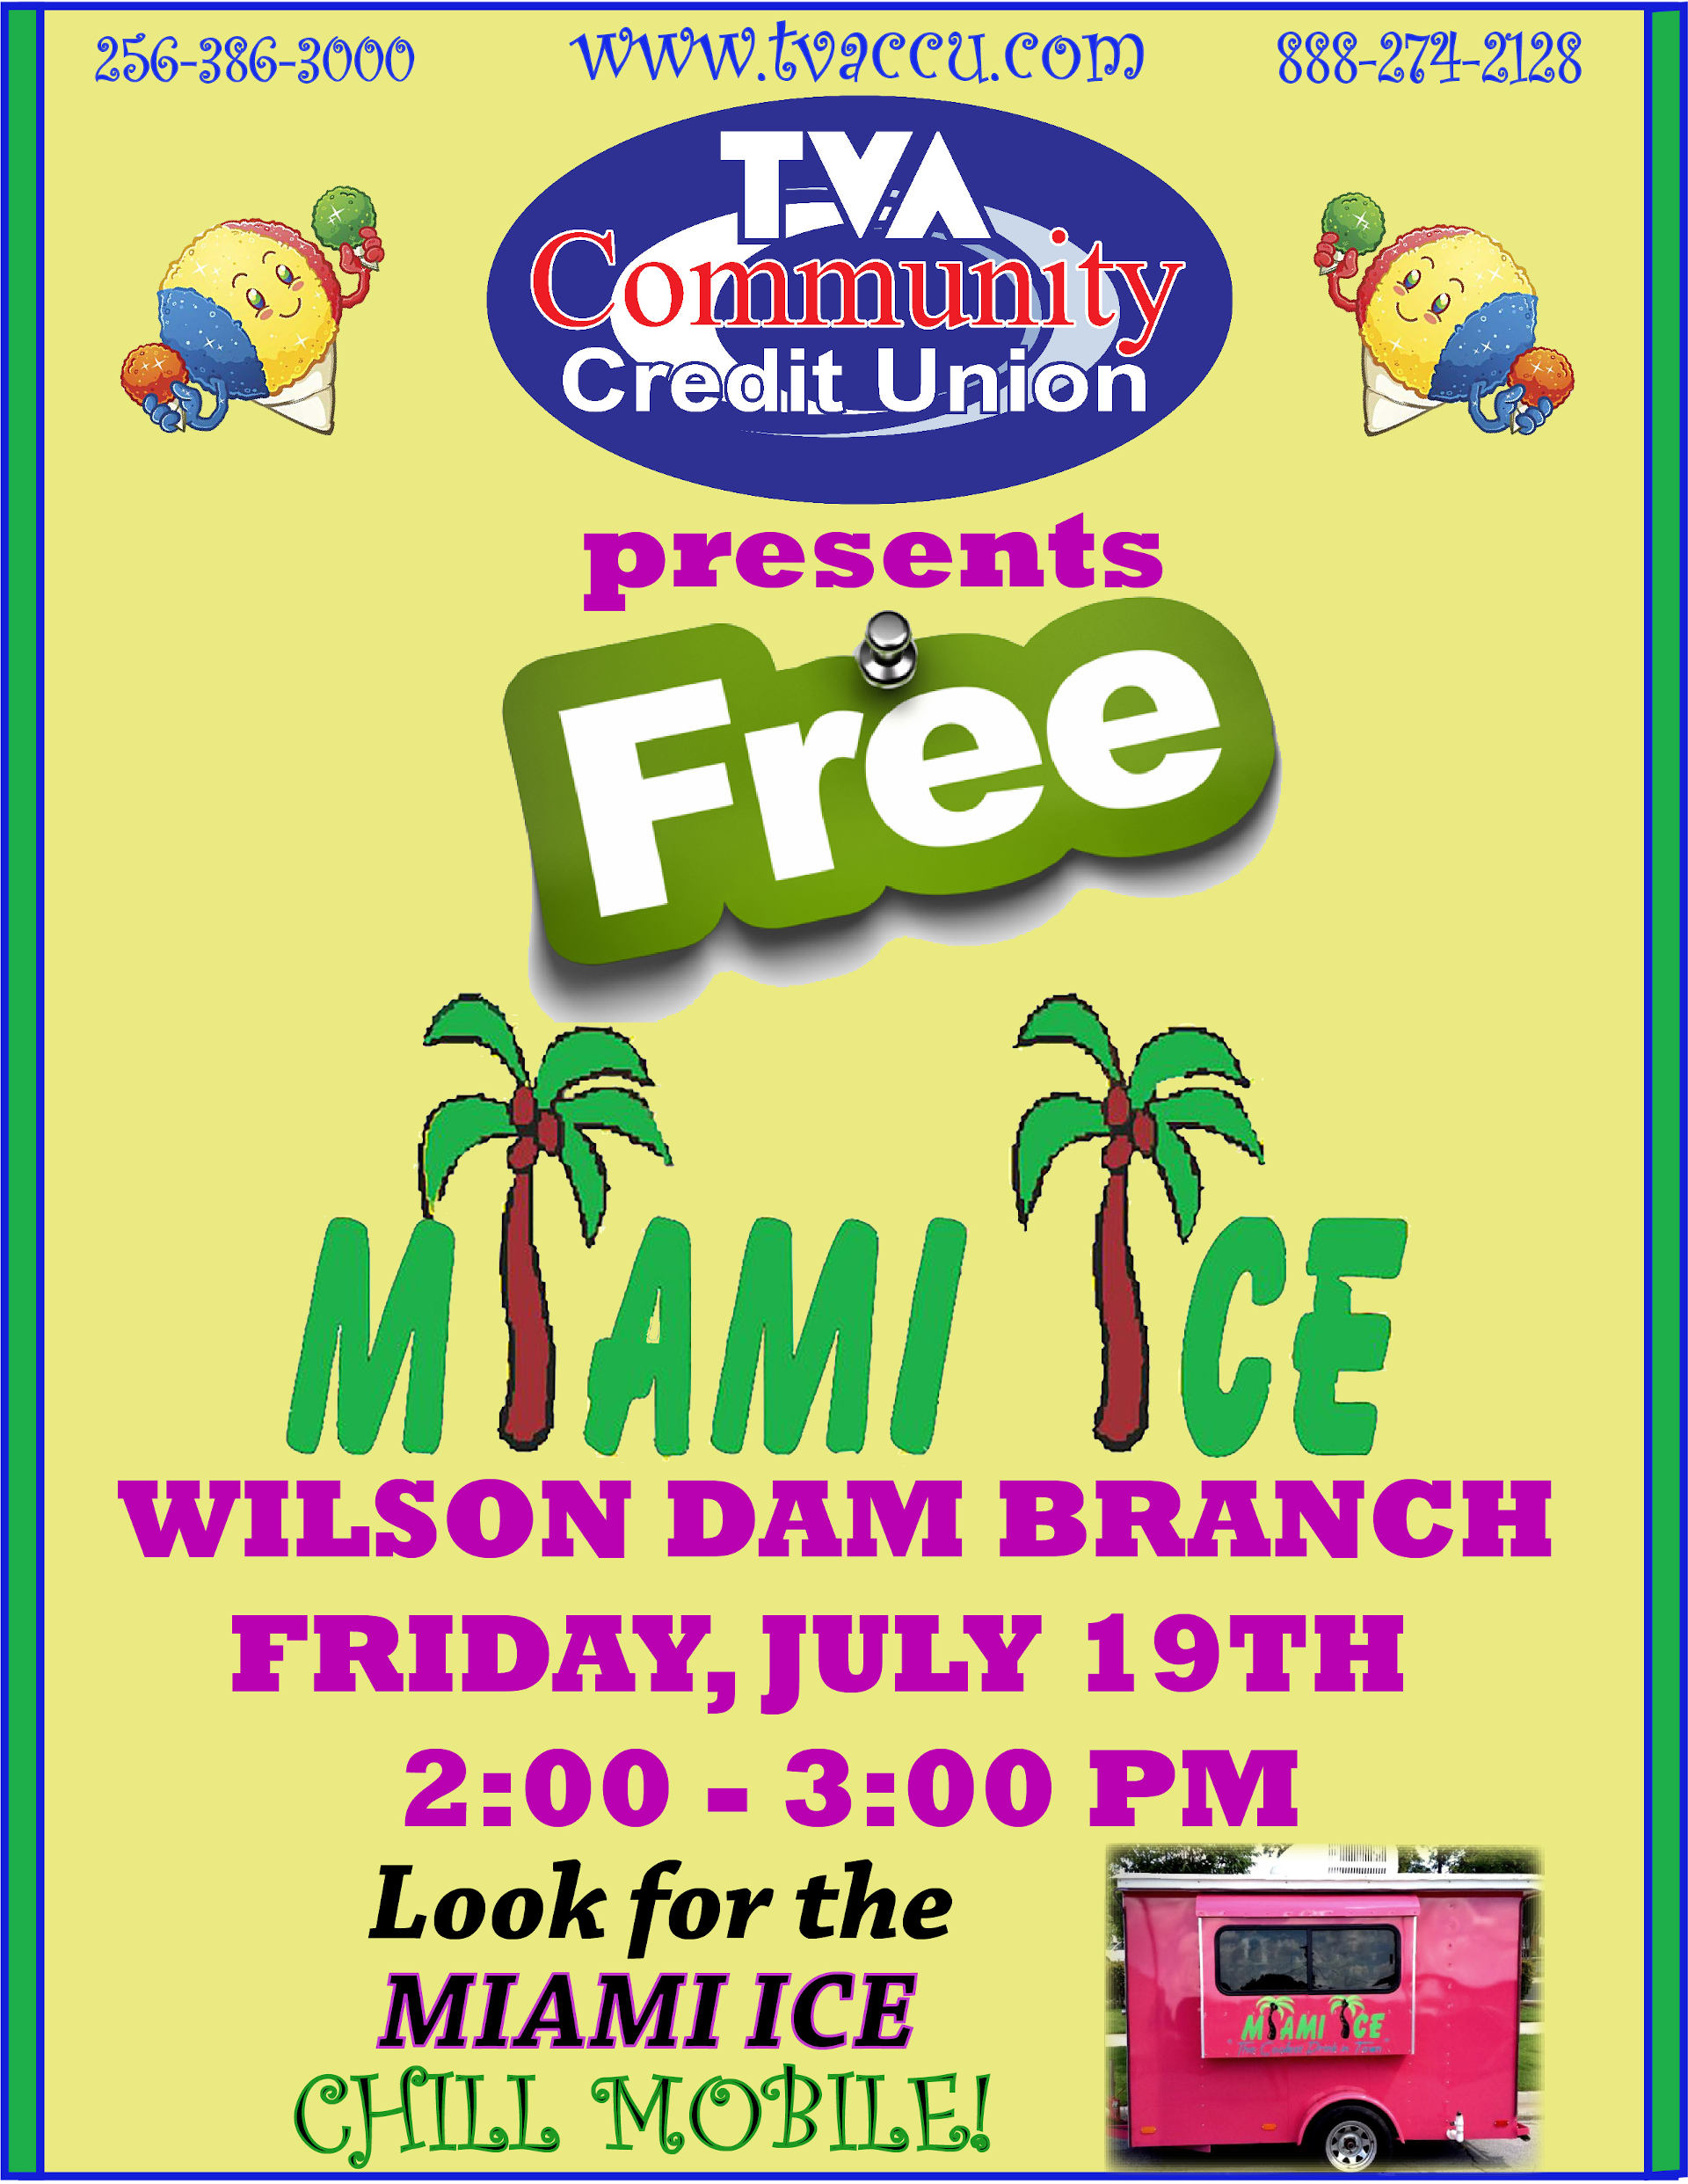 TVA Community Credit Union presents Free Miami Ice, Wilson Dam Branch; Friday, July 19th 2:00 to 3:00 PM, Look for Miami Ice Chill Mobile